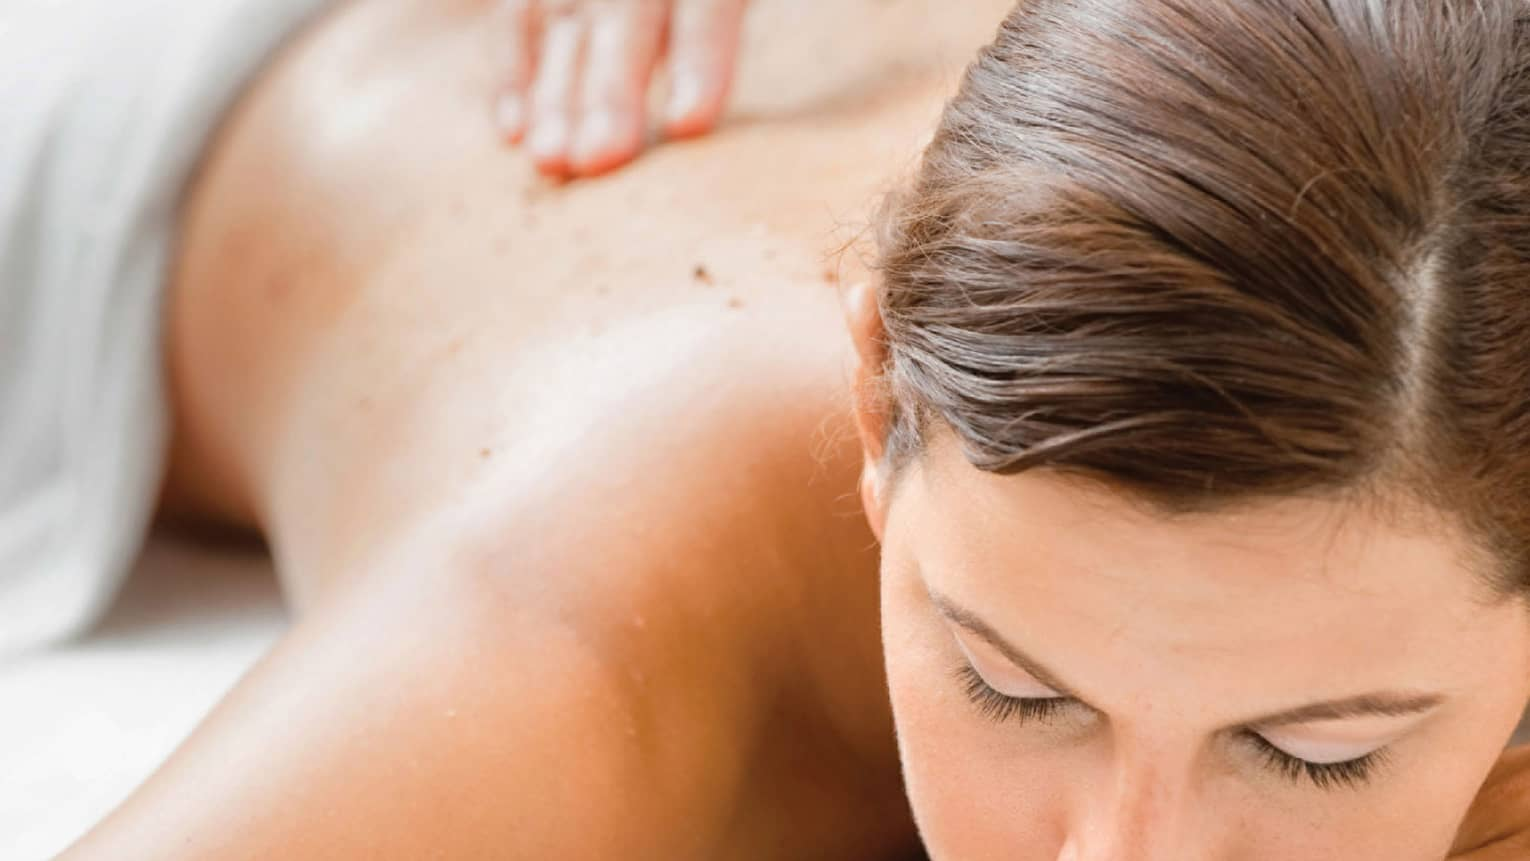 Woman closes eyes as spa staff massages her back